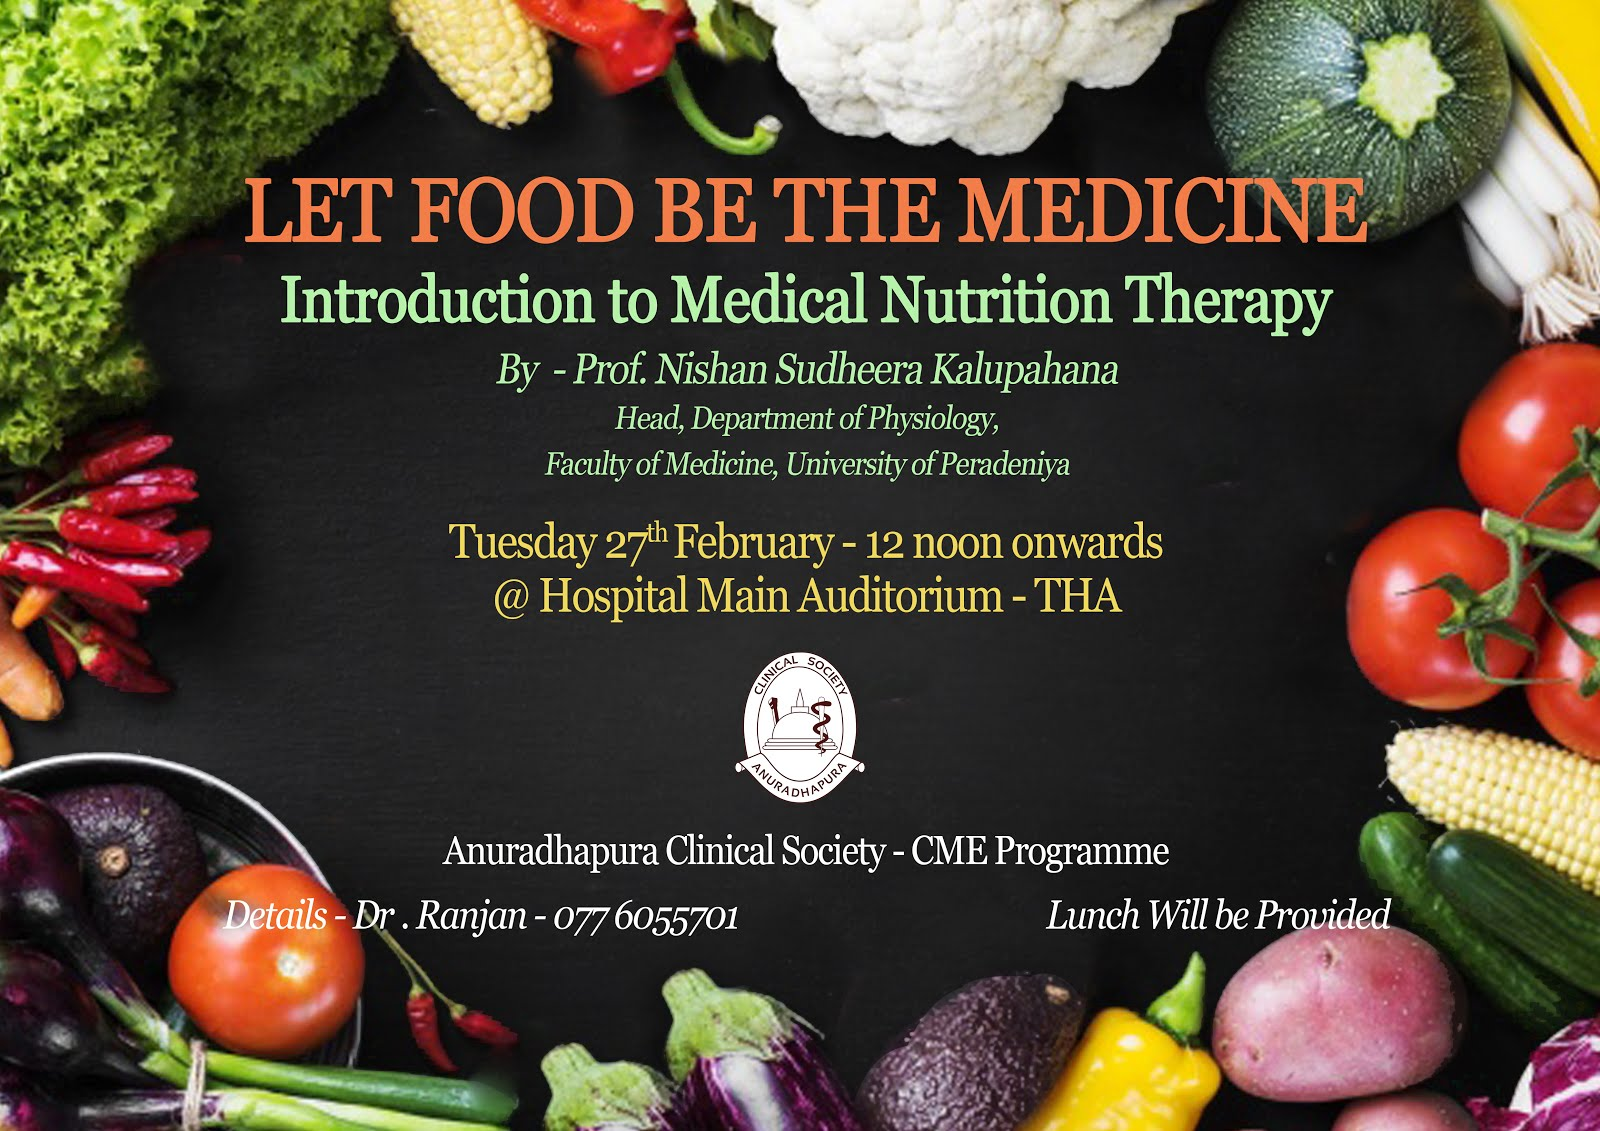 CME Lecture - LET FOOD BE THE MEDICINE